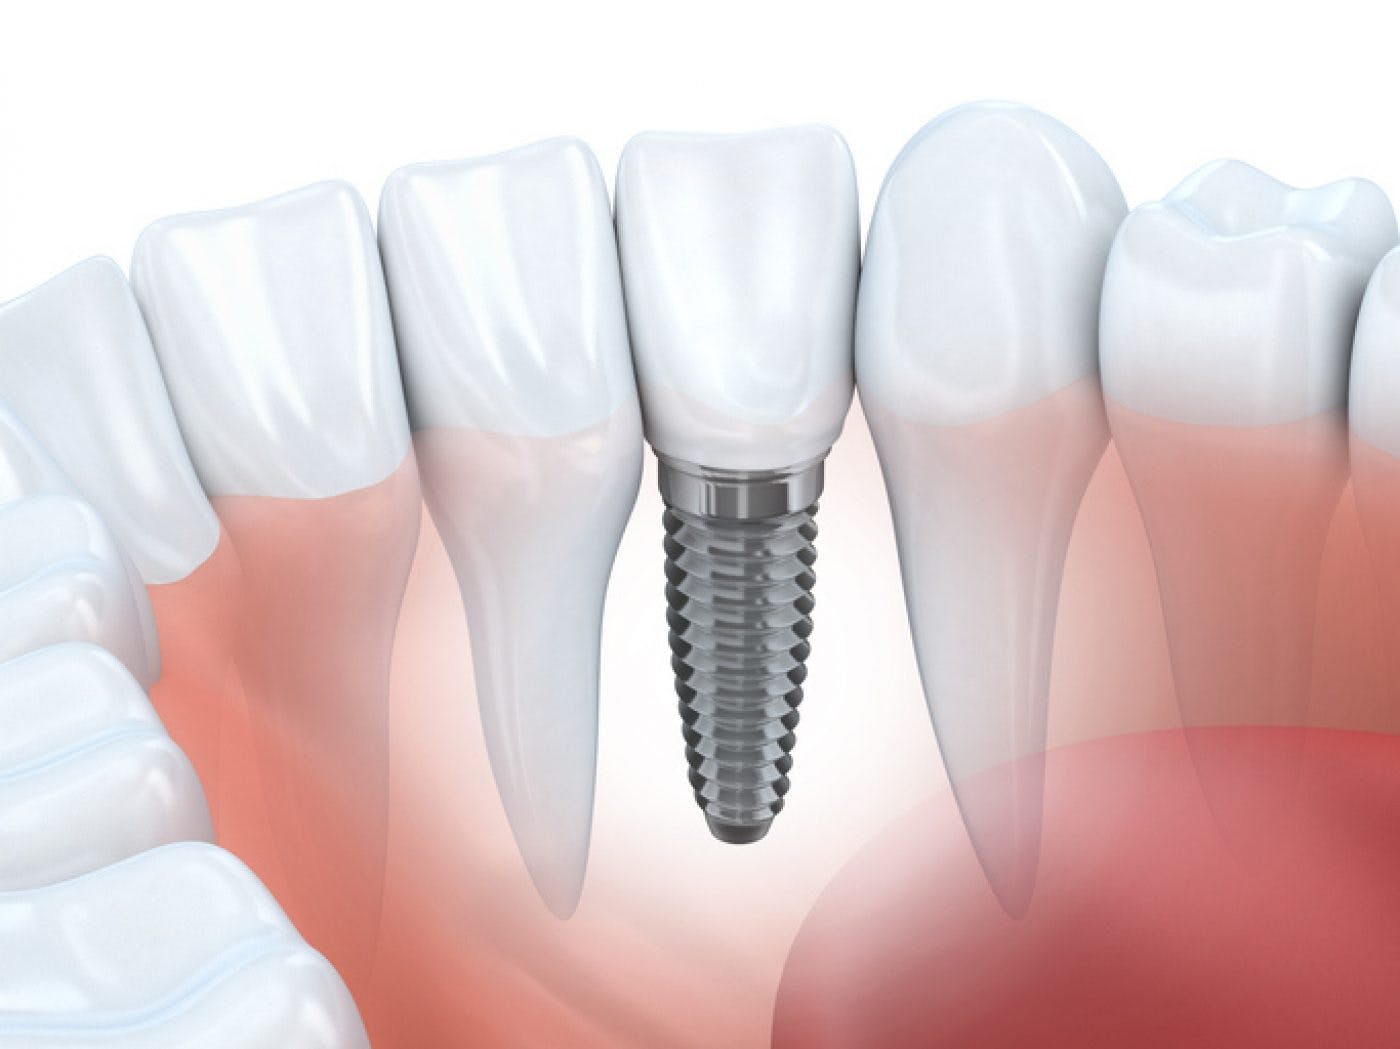 Rainham Single Implant